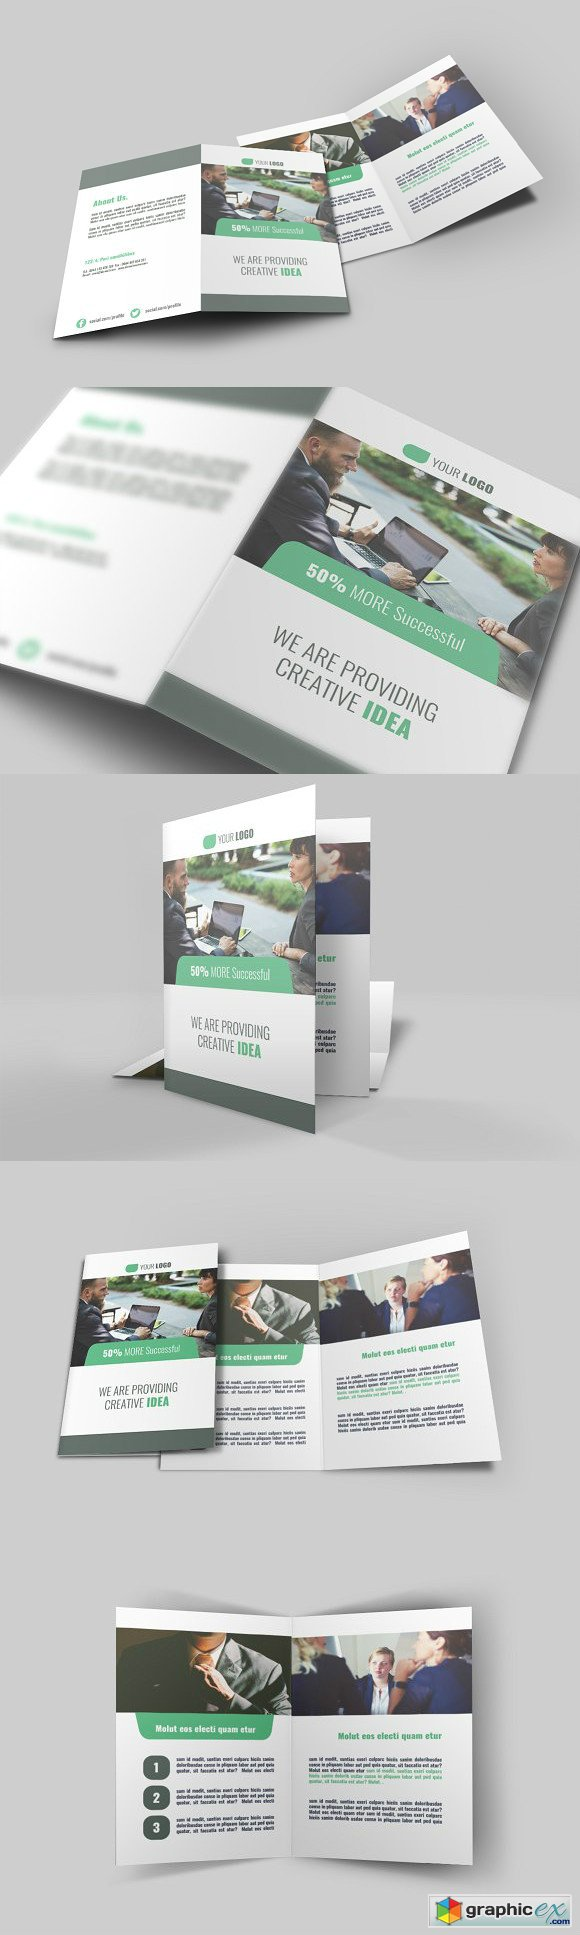 Business Bi Fold Brochure - v009